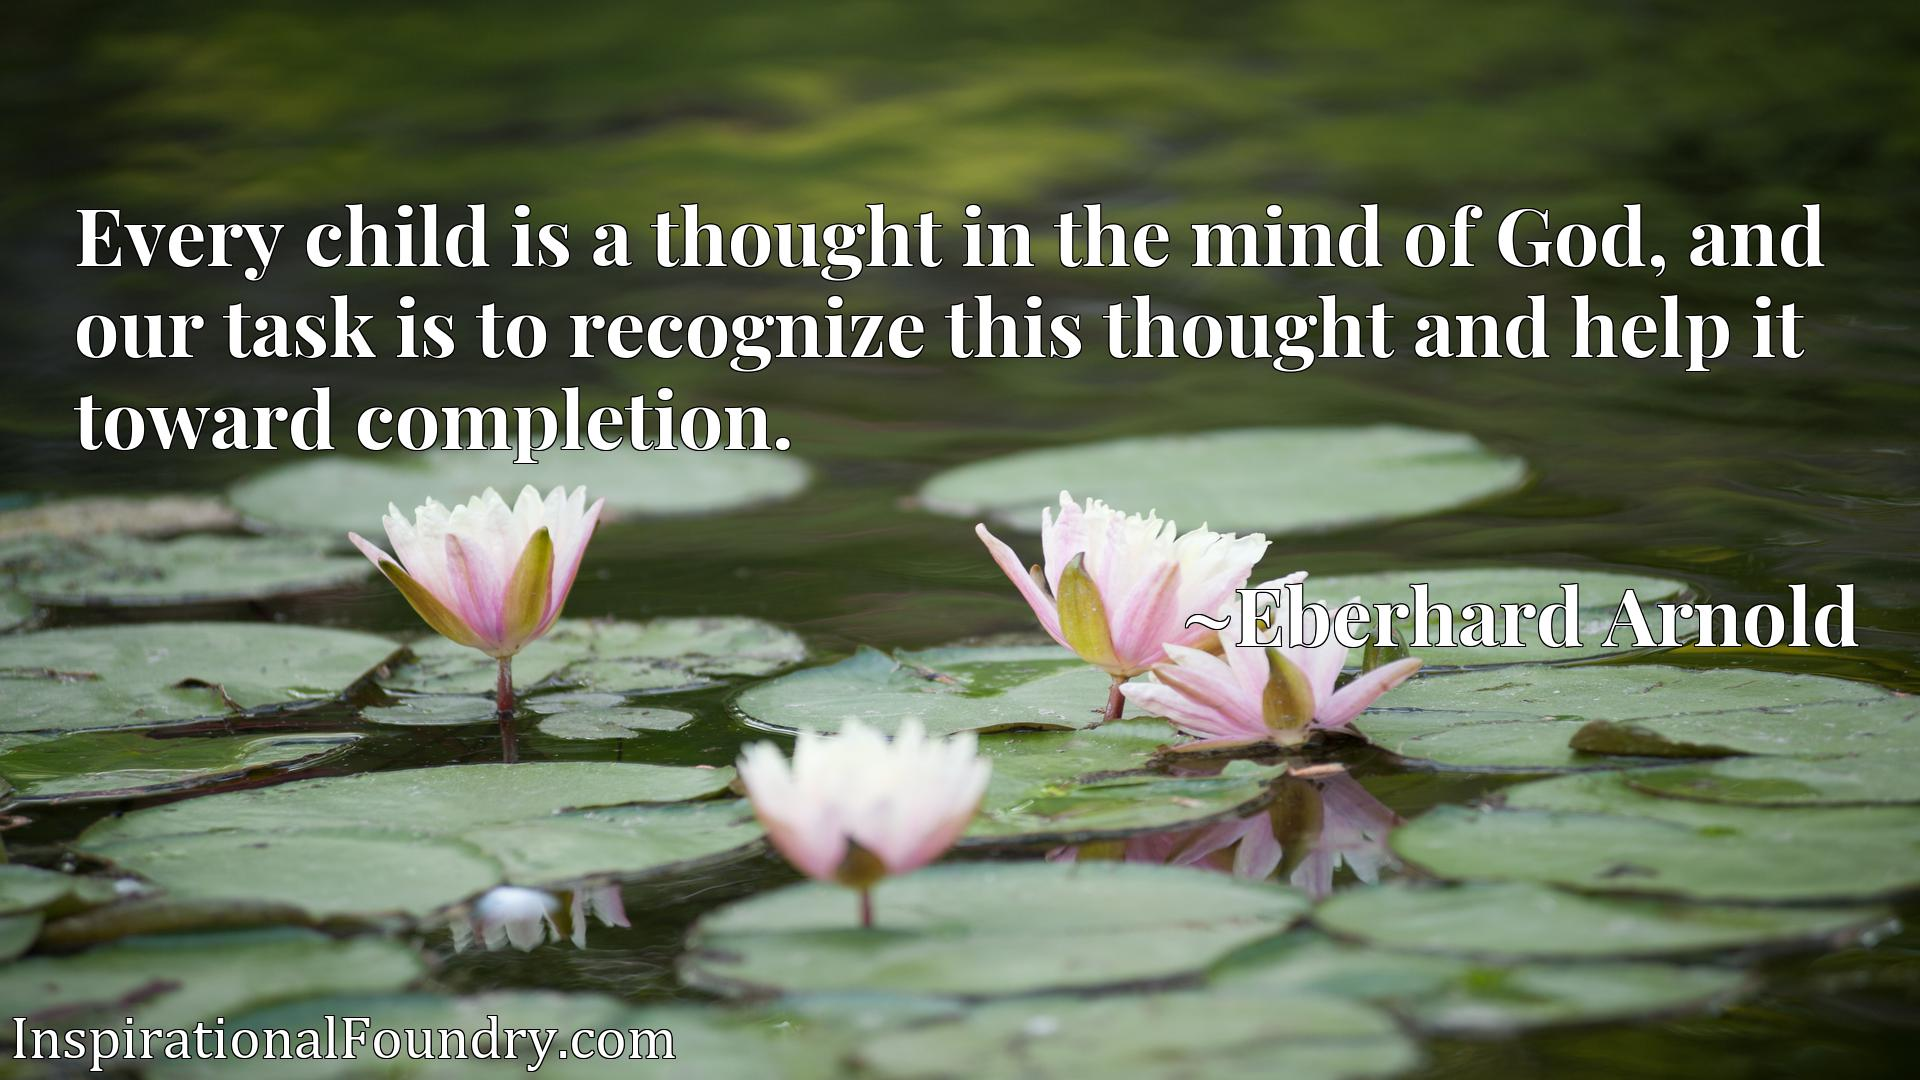 Every child is a thought in the mind of God, and our task is to recognize this thought and help it toward completion.